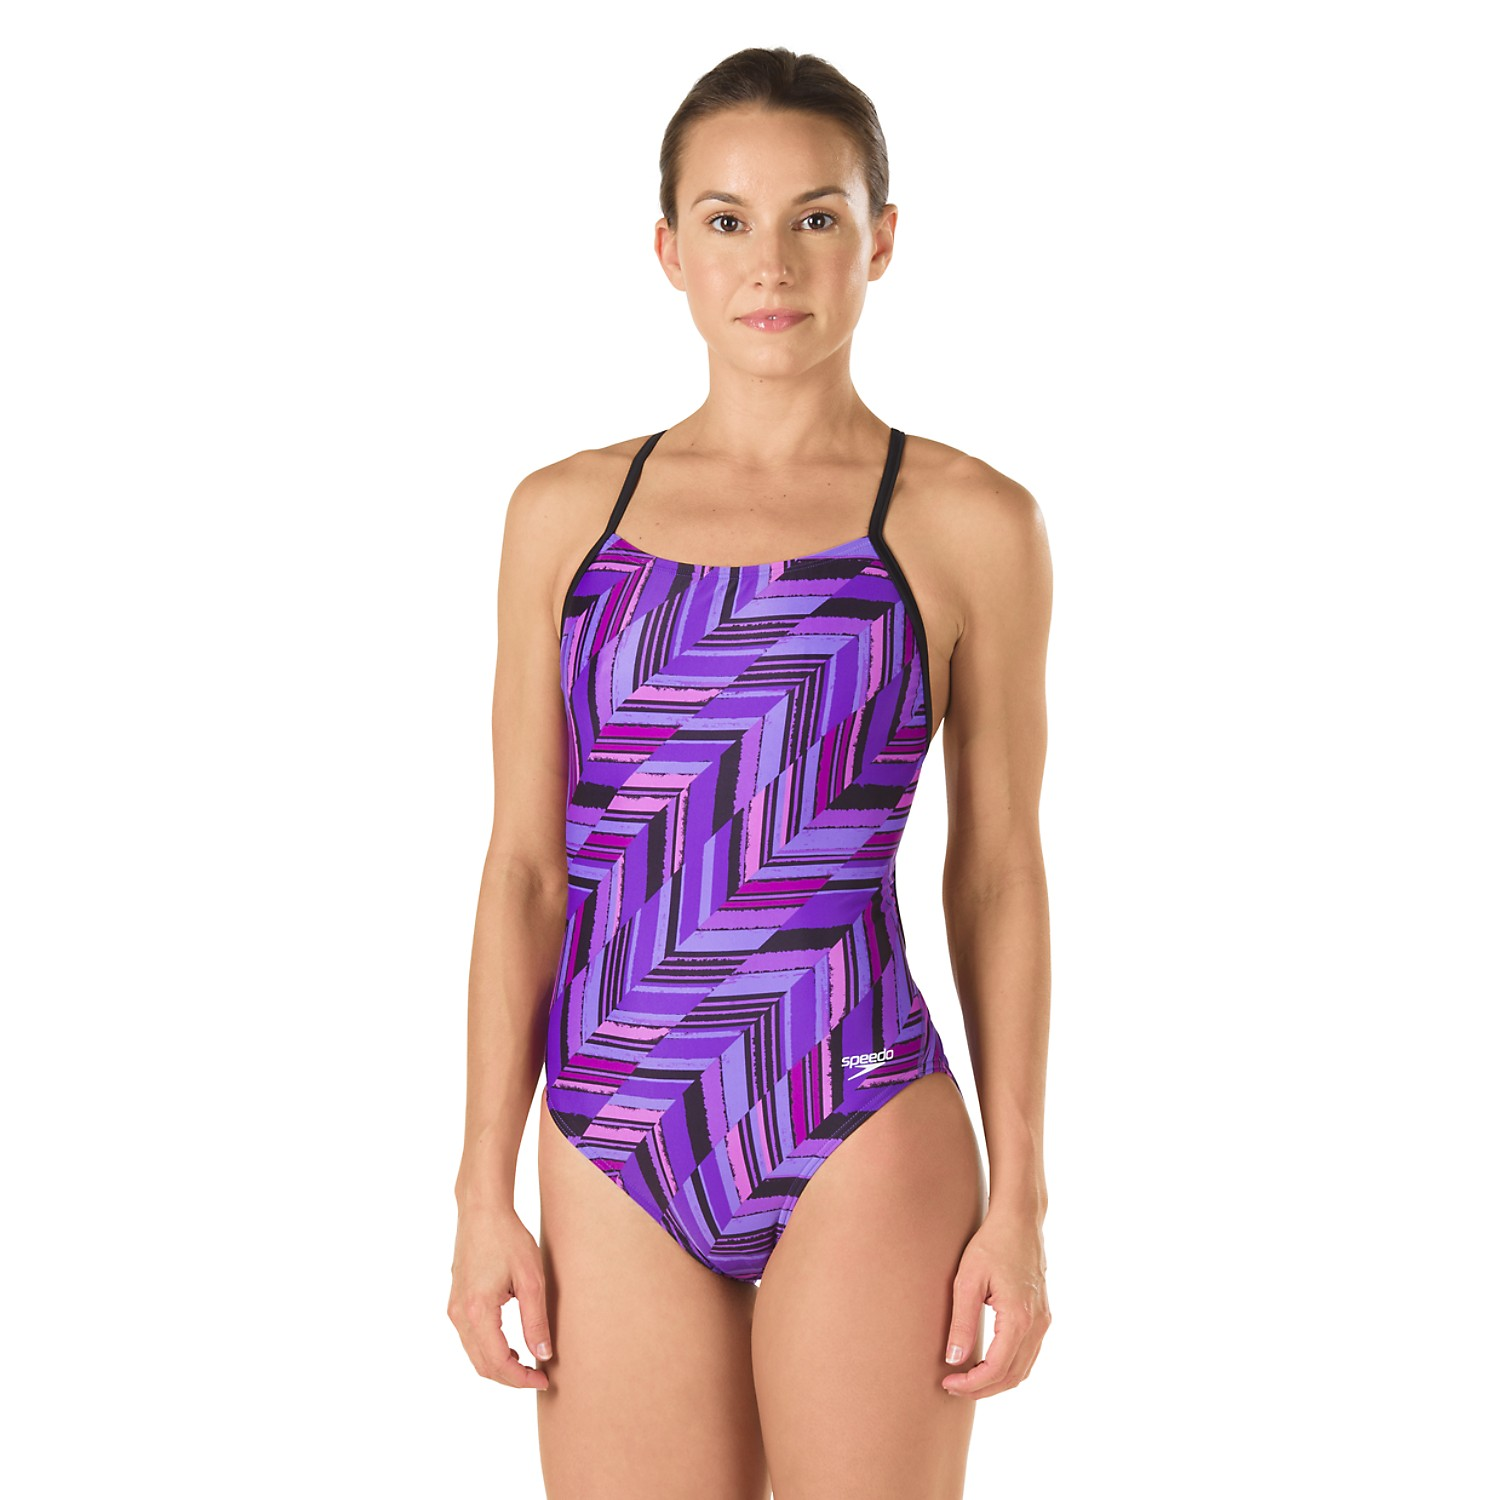 SPEEDO Endurance Angles Free Back - Adult (Speedo Purple (502))